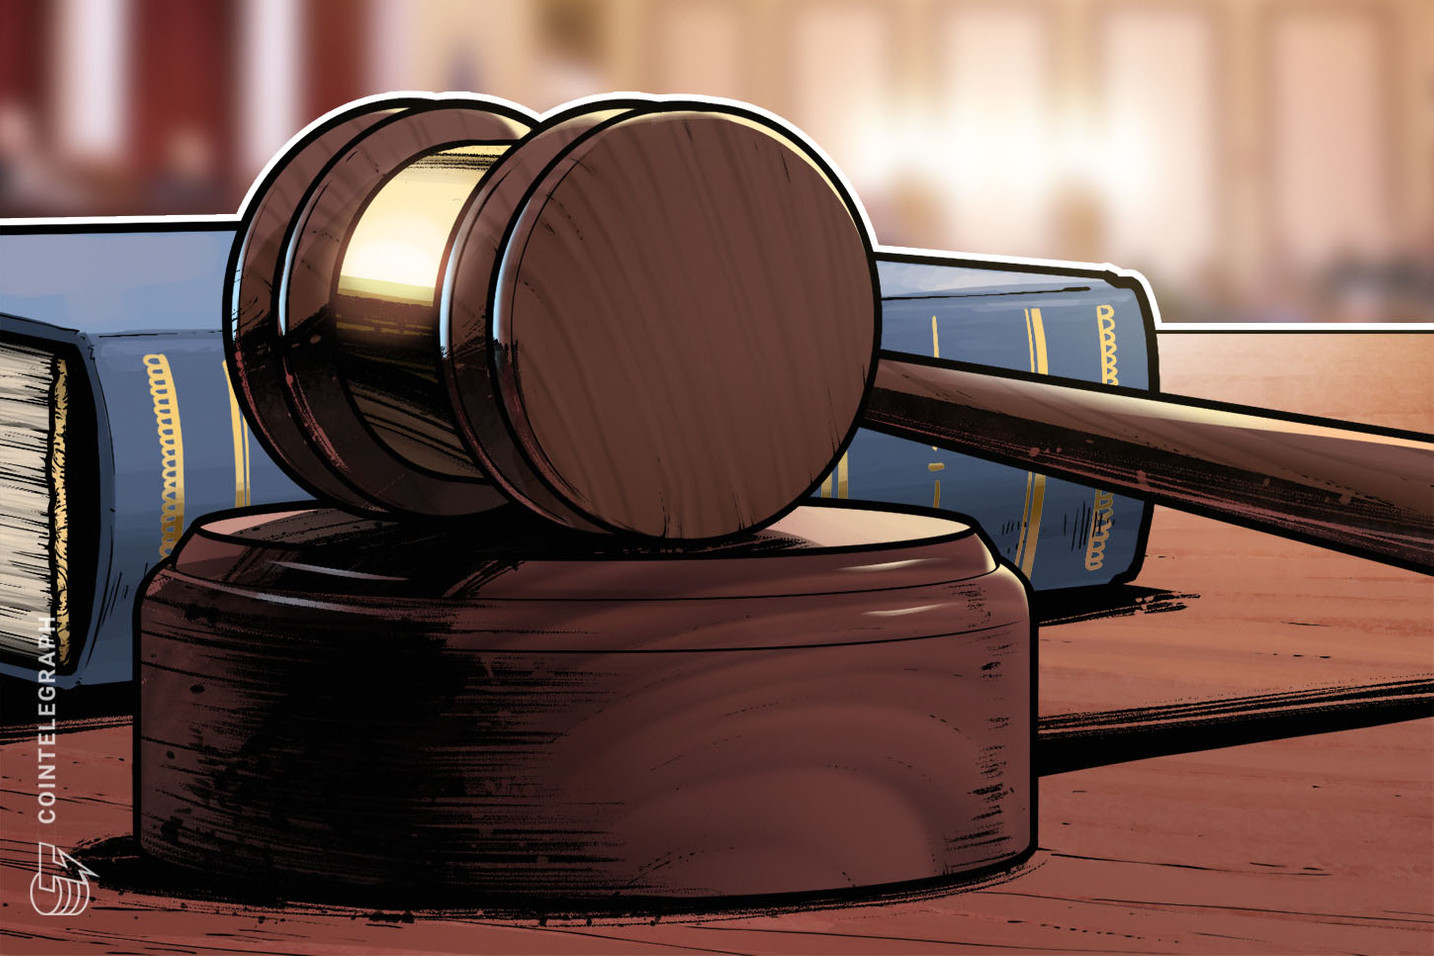 JPMorgan Chase Settles in Suit Over Credit Card Crypto Purchases